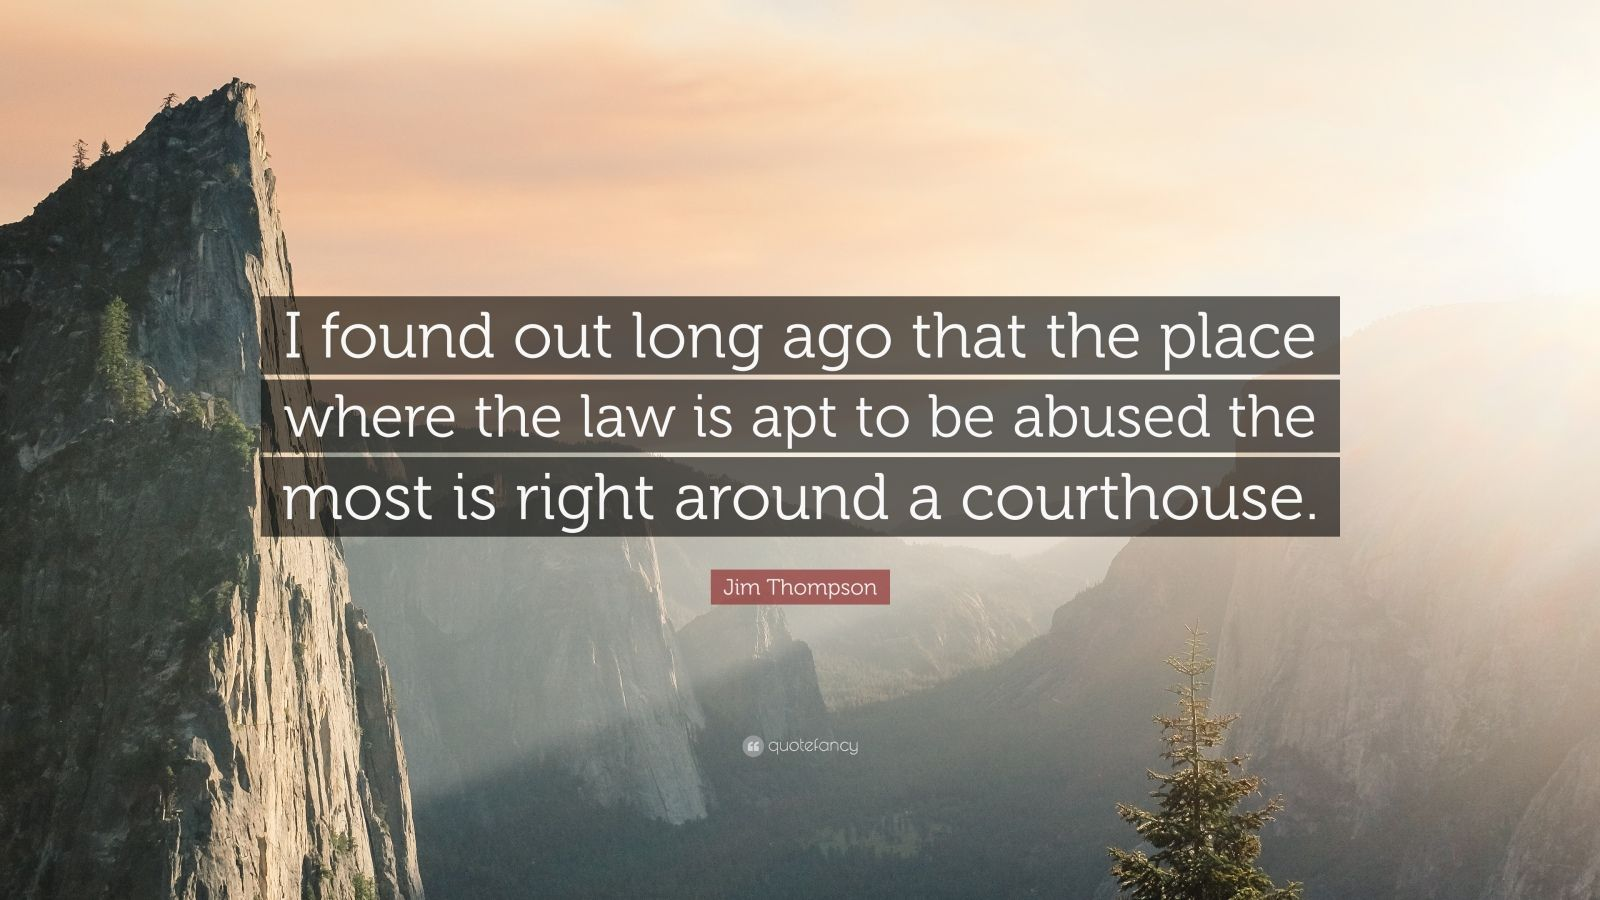 """Jim Thompson Quote: """"I found out long ago that the place where the law is apt to be abused the most is right around a courthouse."""""""